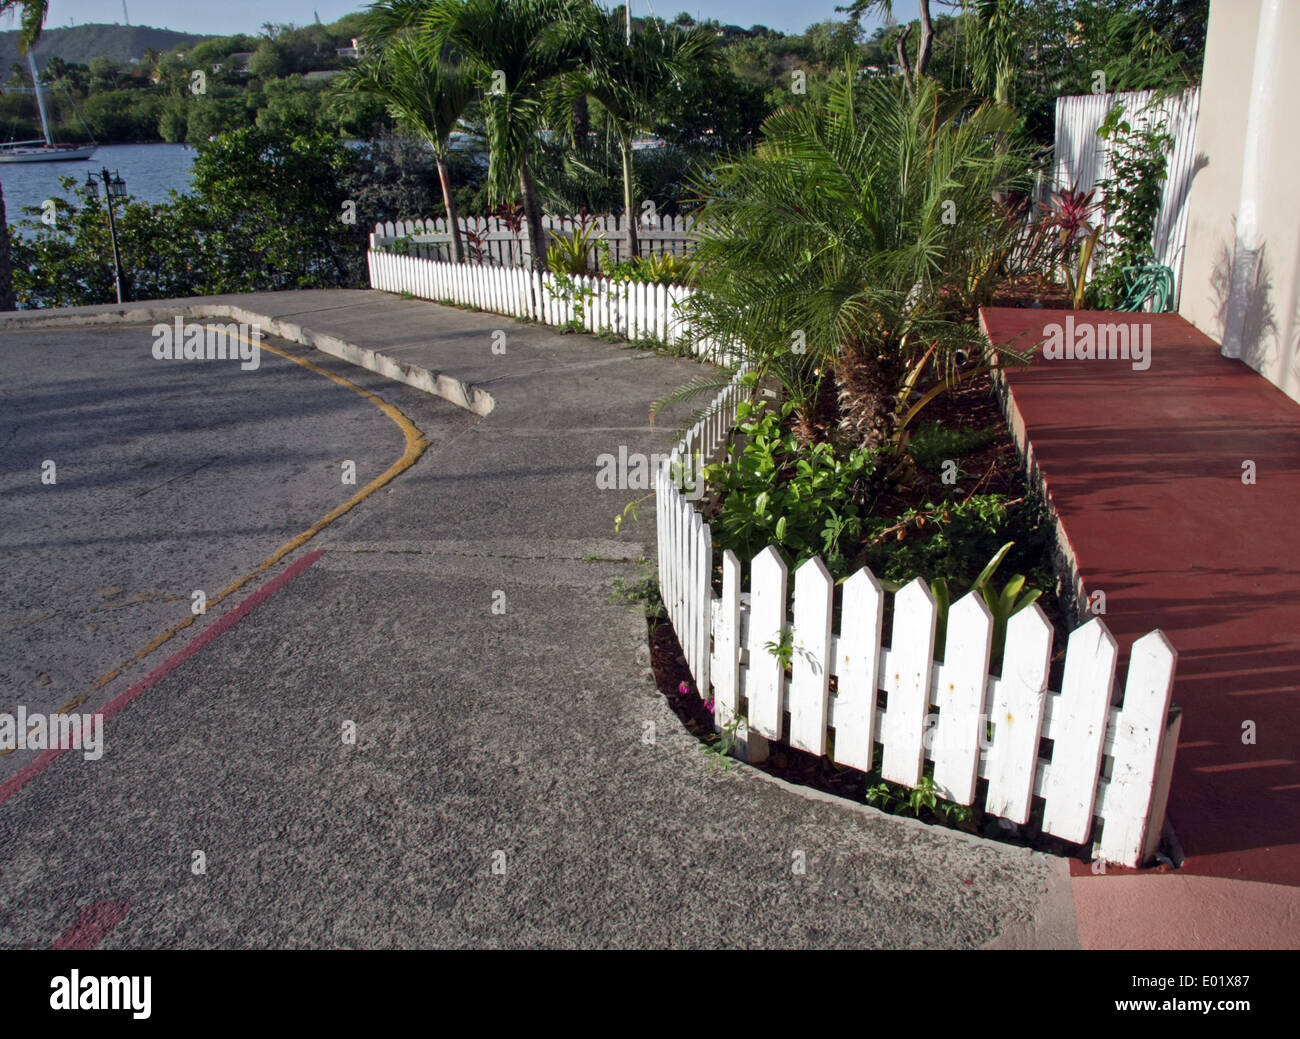 Picket Fences Stock Photos & Picket Fences Stock Images